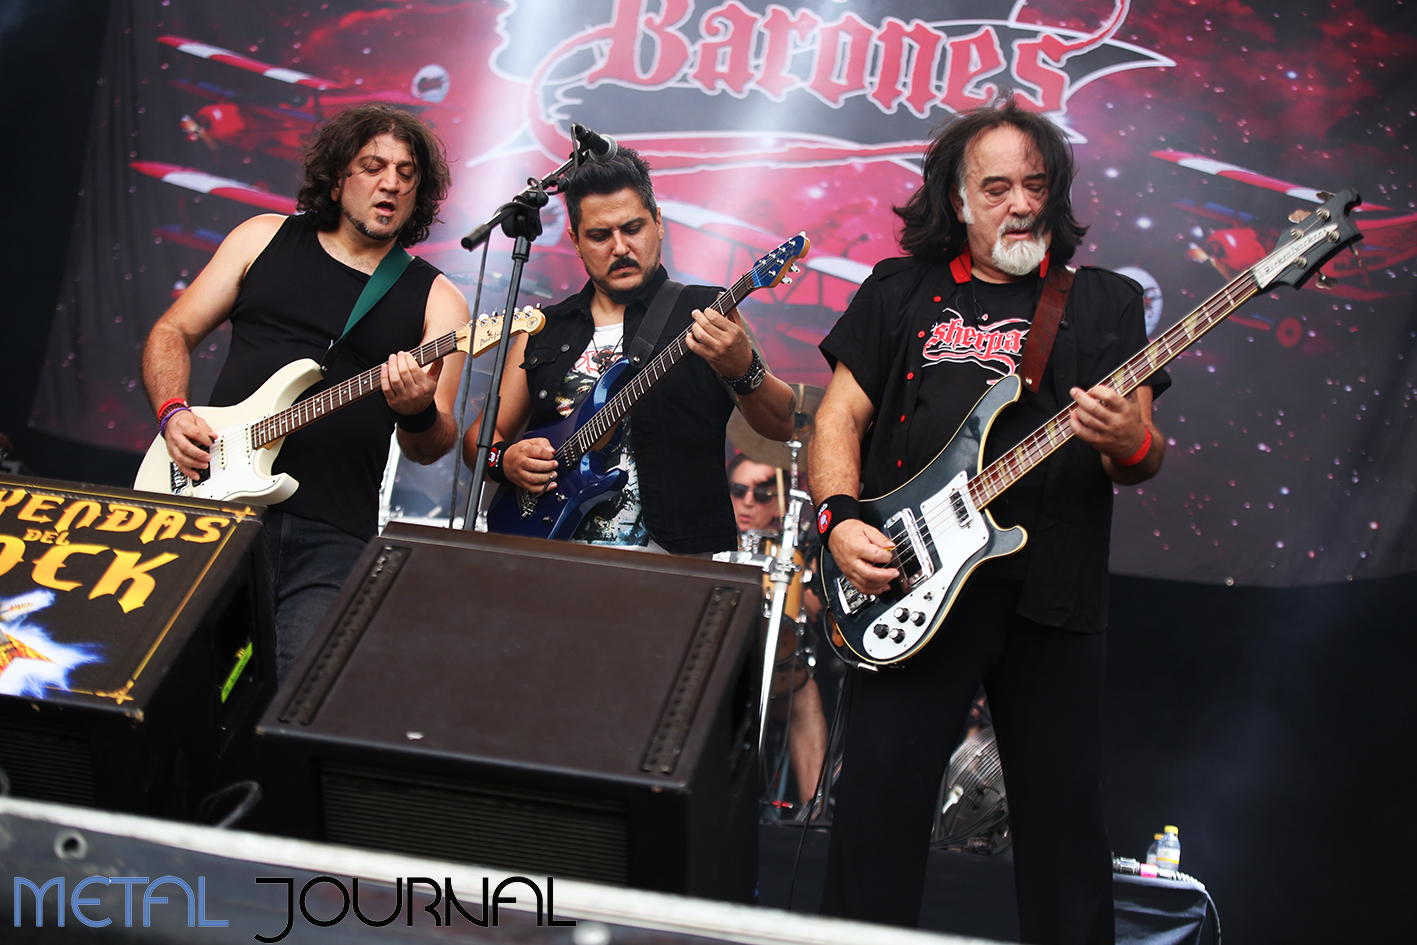 los barones - leyendas del rock 2019 metal journal pic 5